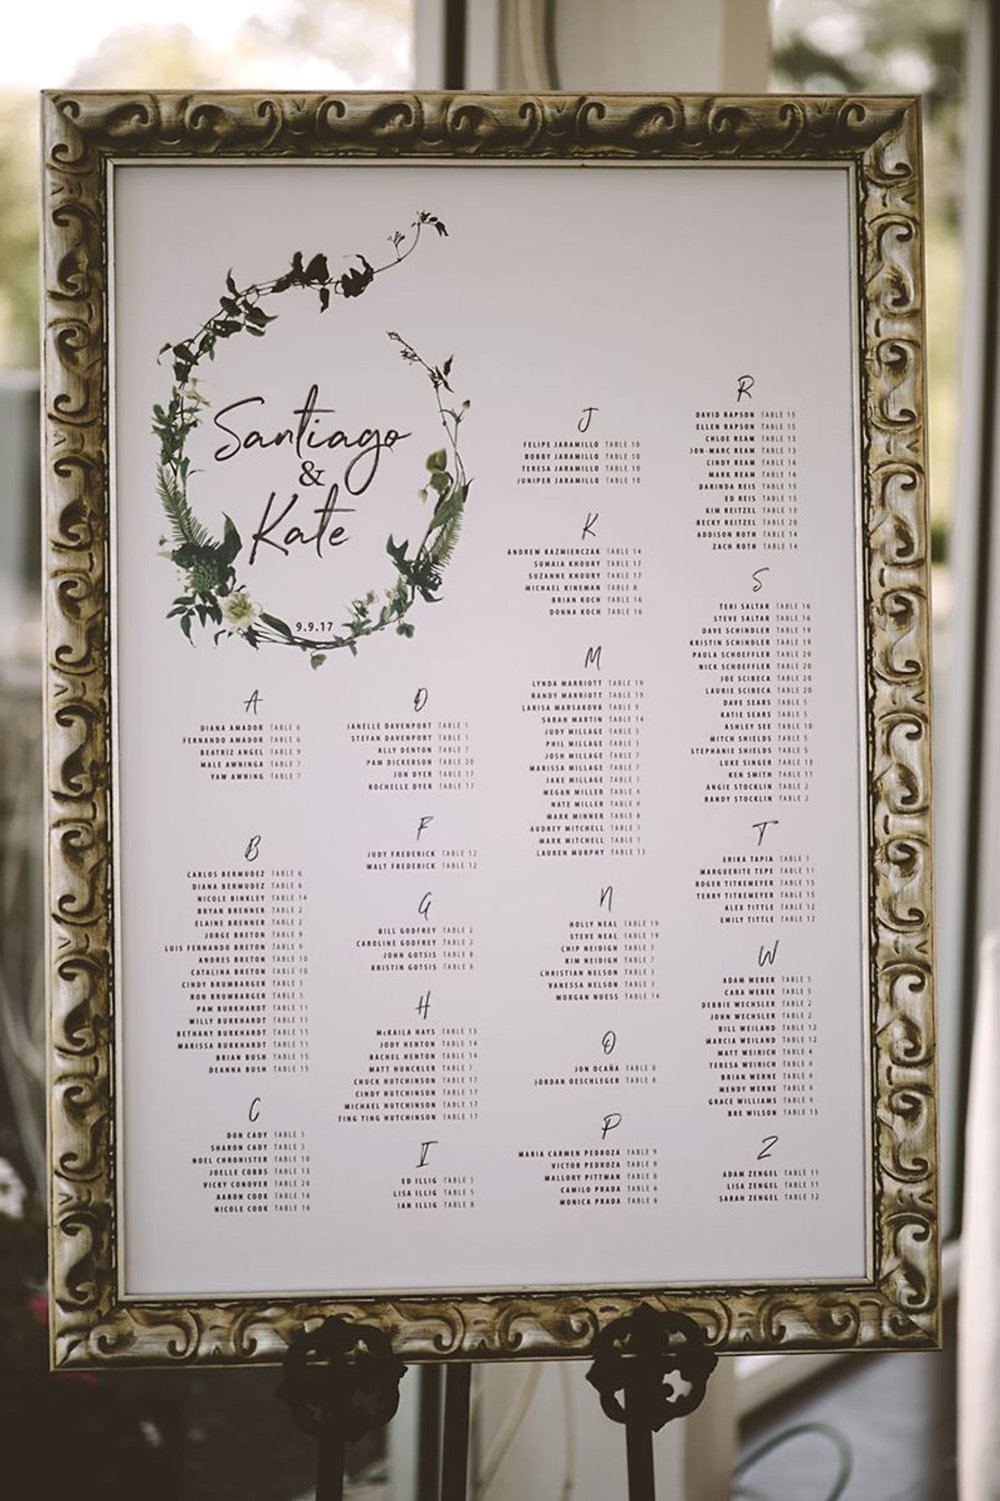 wedding-day of-seating-chart-floral-white-green-handwritten-alphabetical.jpg